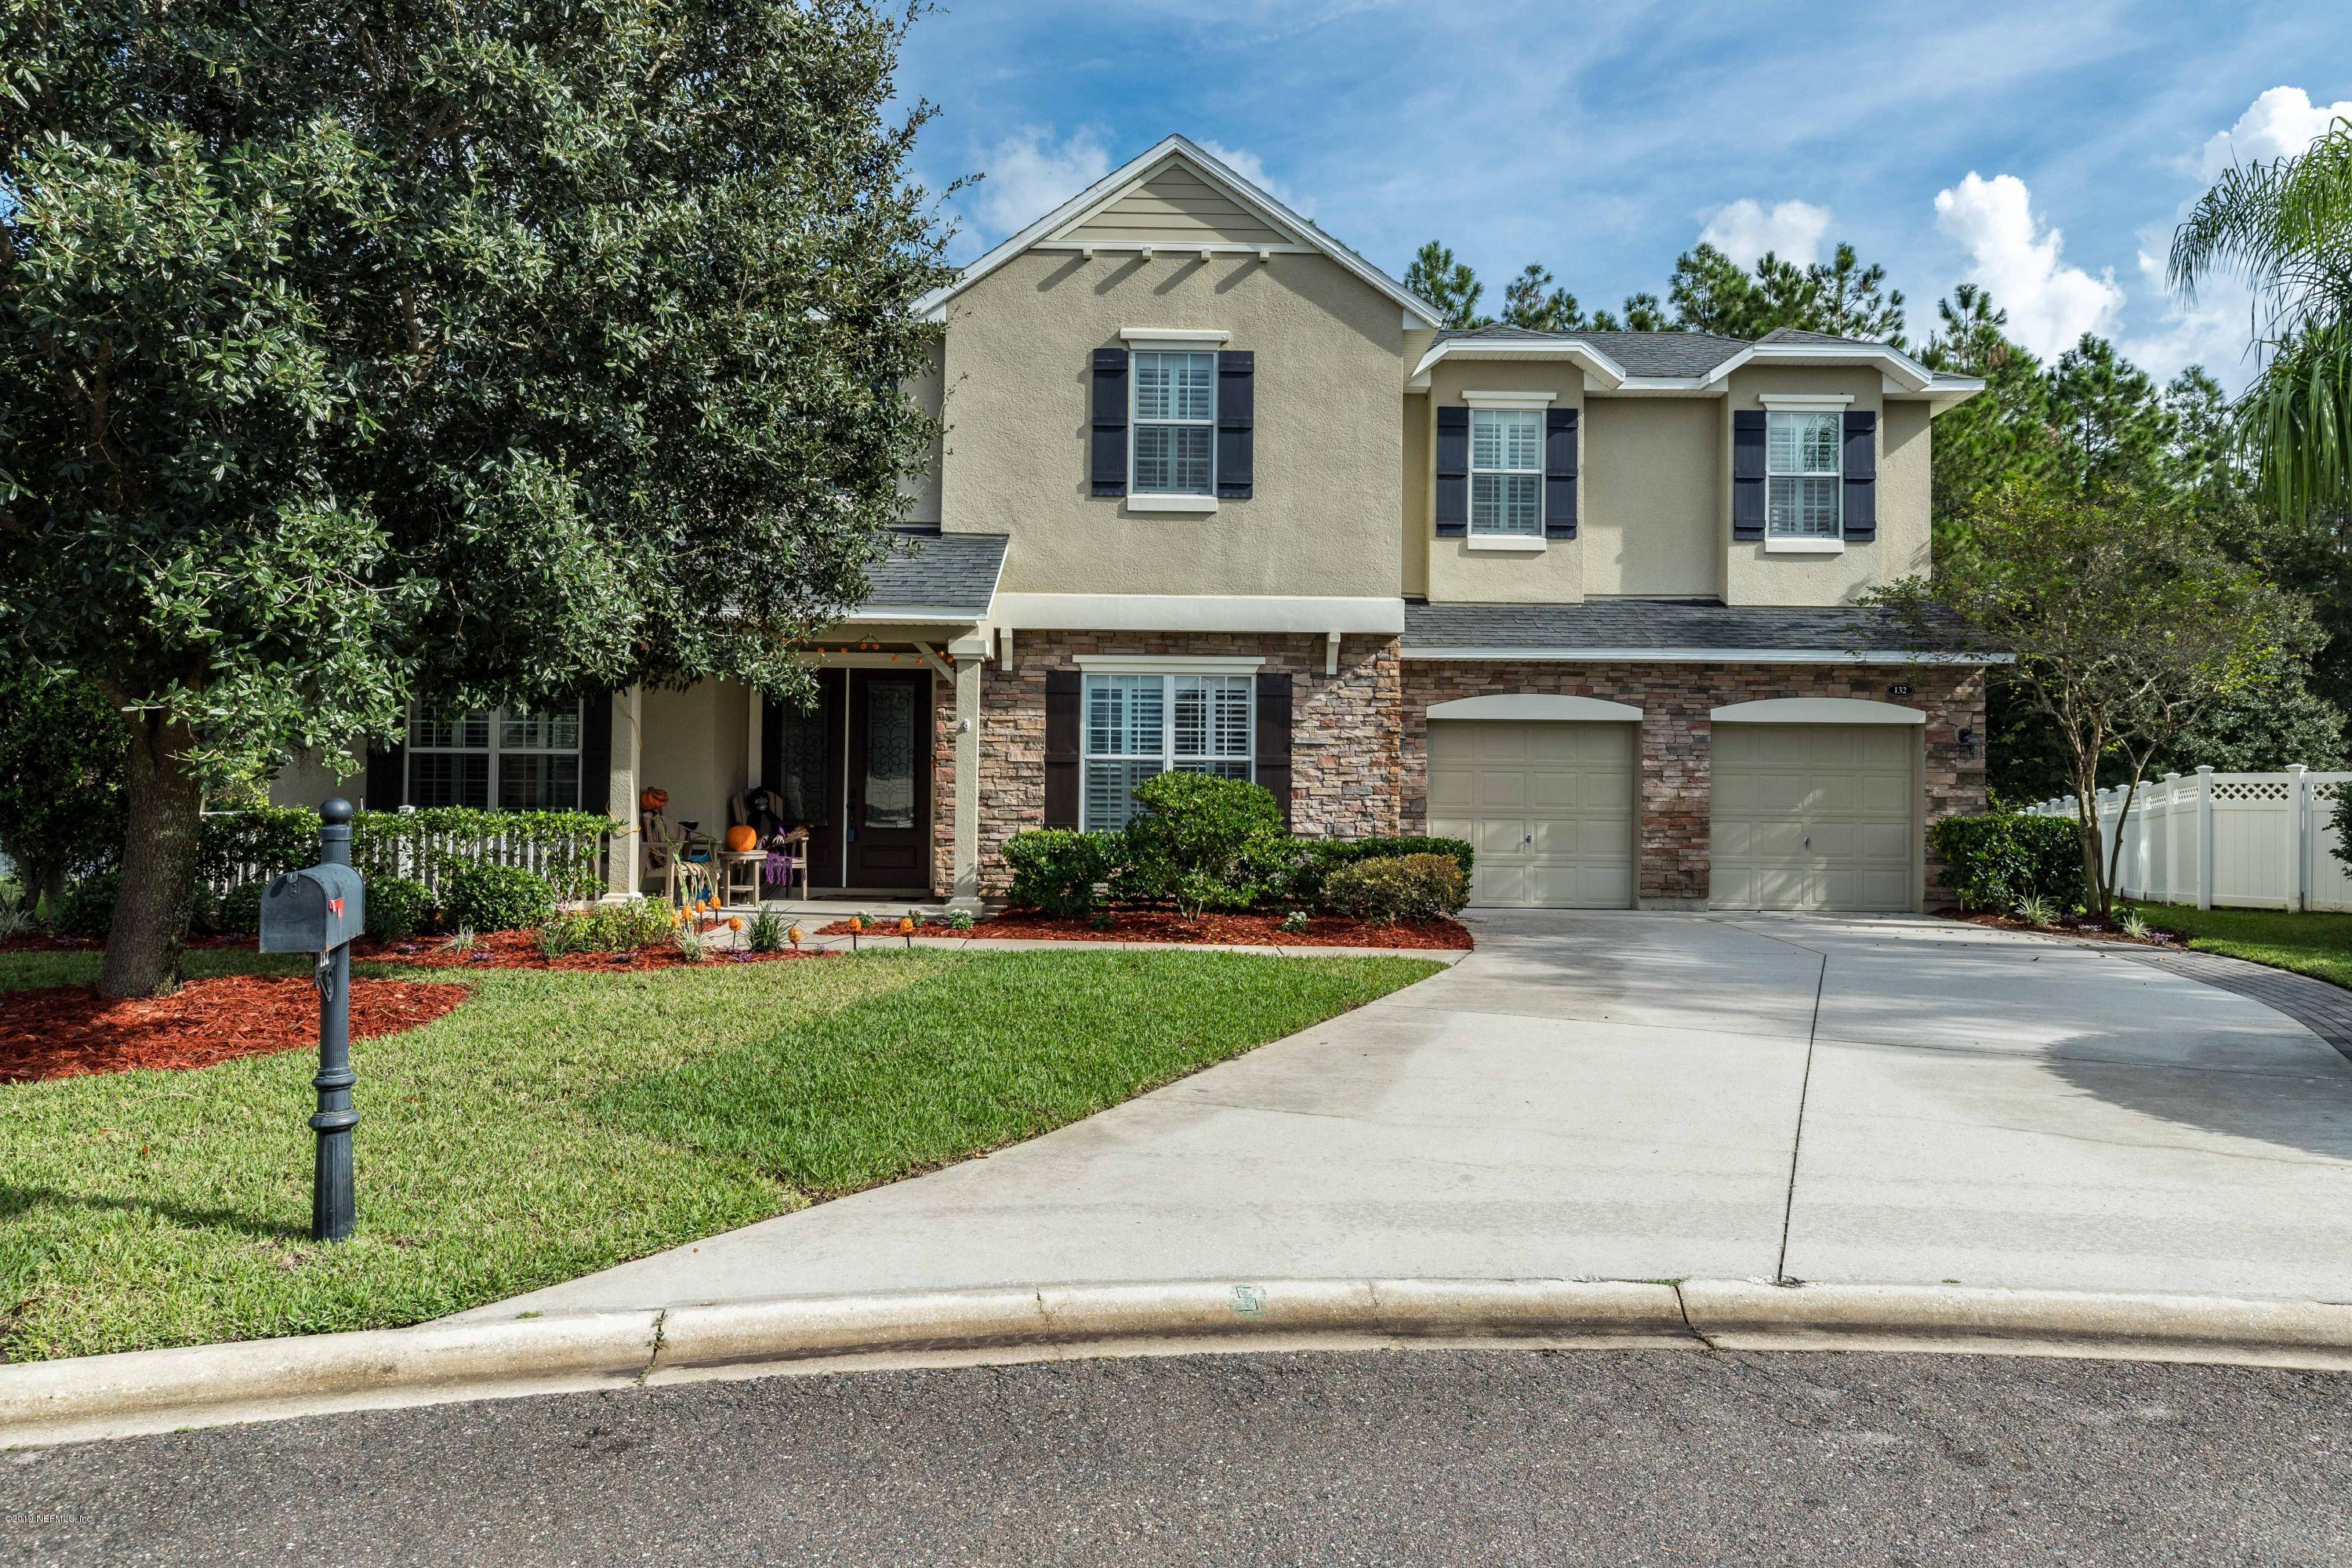 132 CHATSWORTH, JACKSONVILLE, FLORIDA 32259, 4 Bedrooms Bedrooms, ,3 BathroomsBathrooms,Residential - single family,For sale,CHATSWORTH,1022161